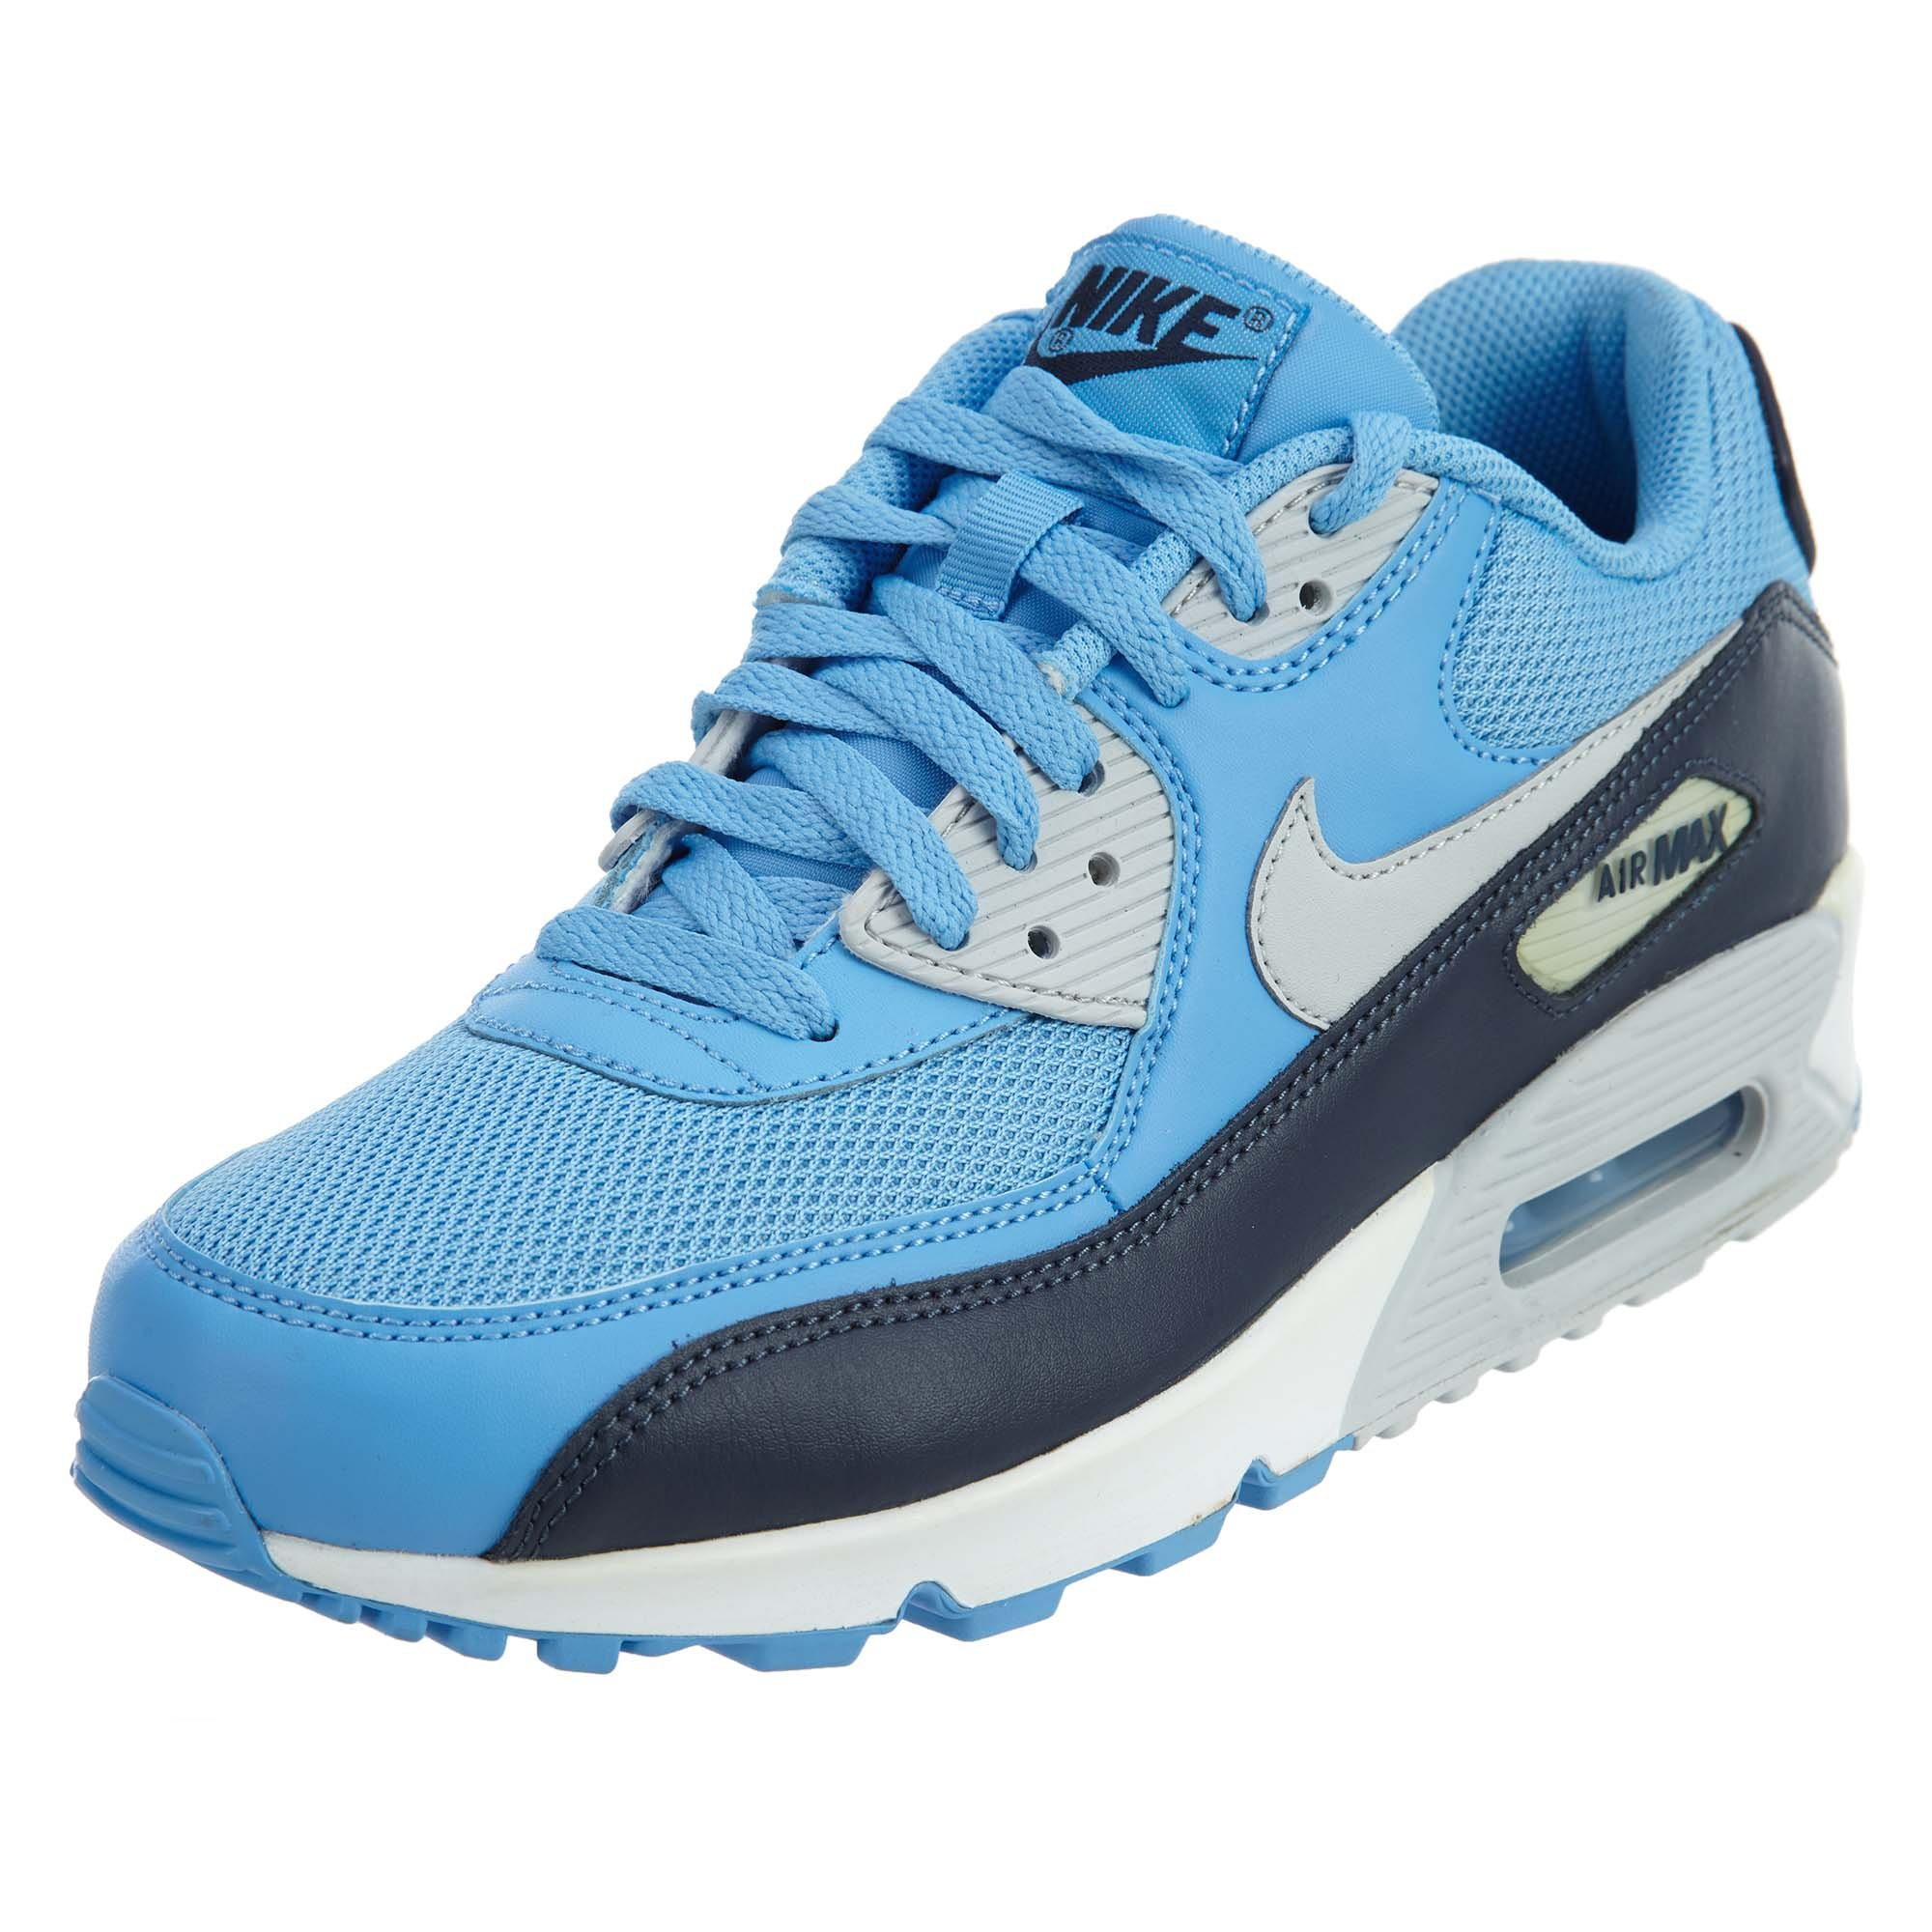 check out 7684b 42999 Galleon - NIKE Air Max 90 Essential Mens Style   537384-416 Size   7 M US